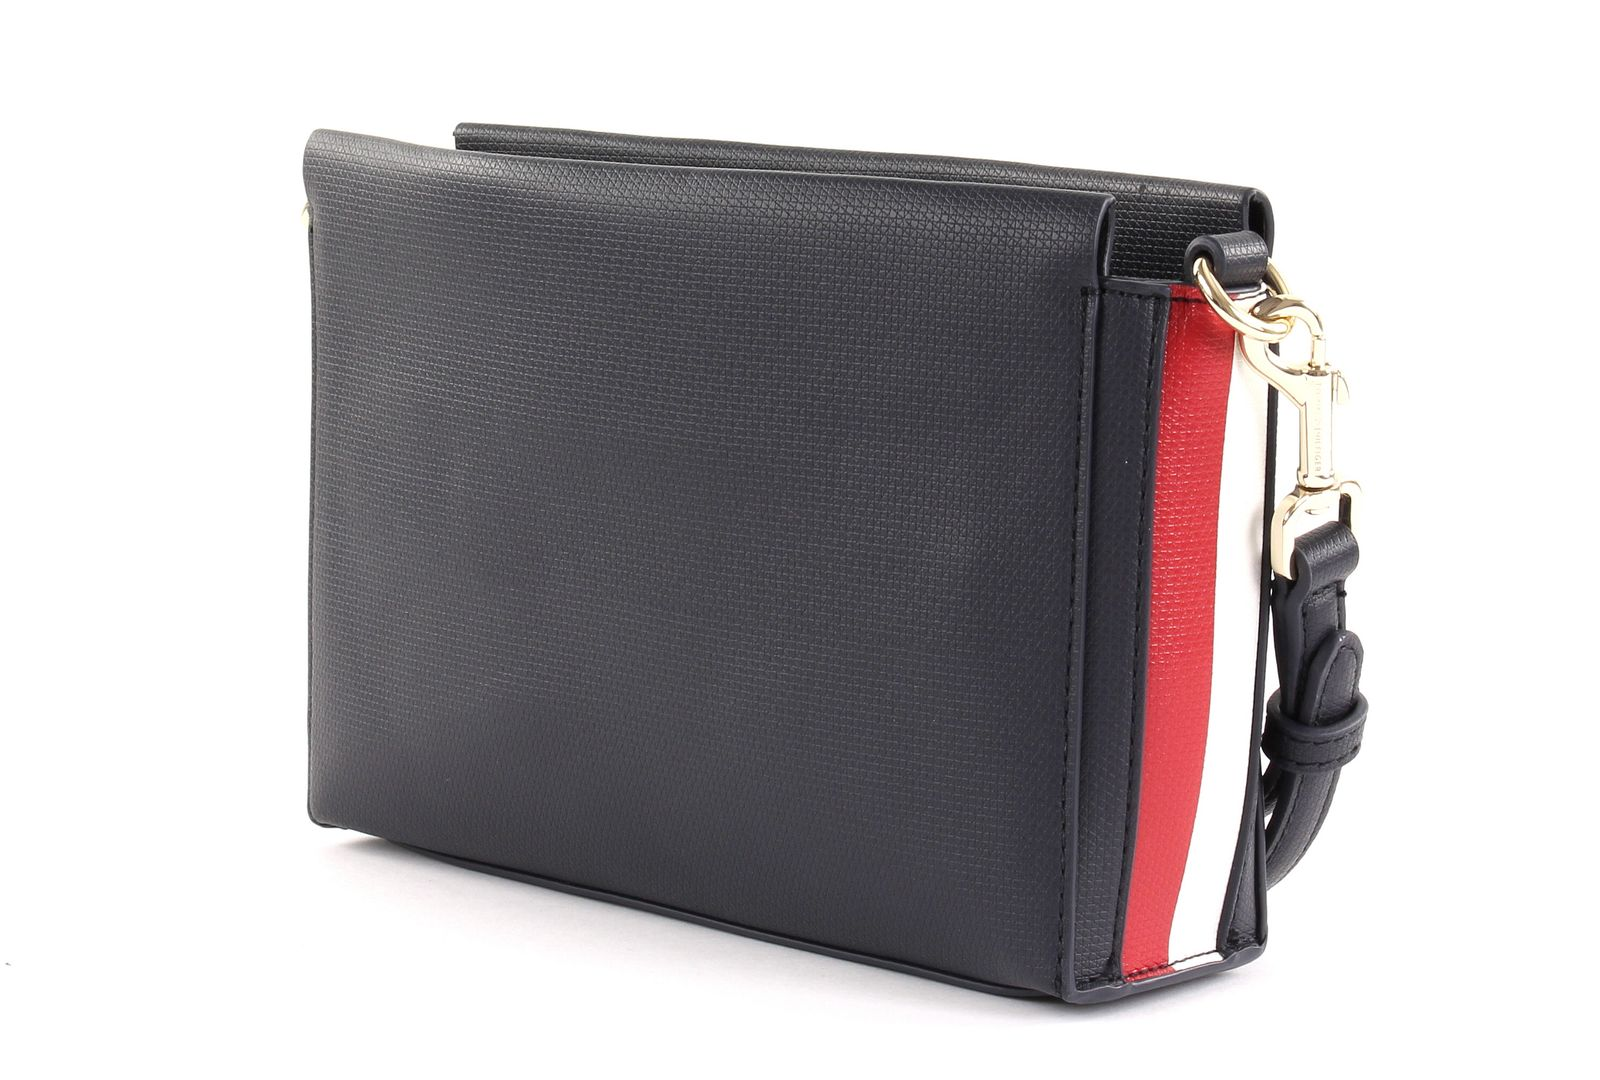 ... To CloseTOMMY HILFIGER Effortless Saffiano Crossover Corporate   85,92  € Tap To CloseOnly possible if you pay by Paypal, Amazon Payments, Credit  Card, ... 13df8a7cb78c